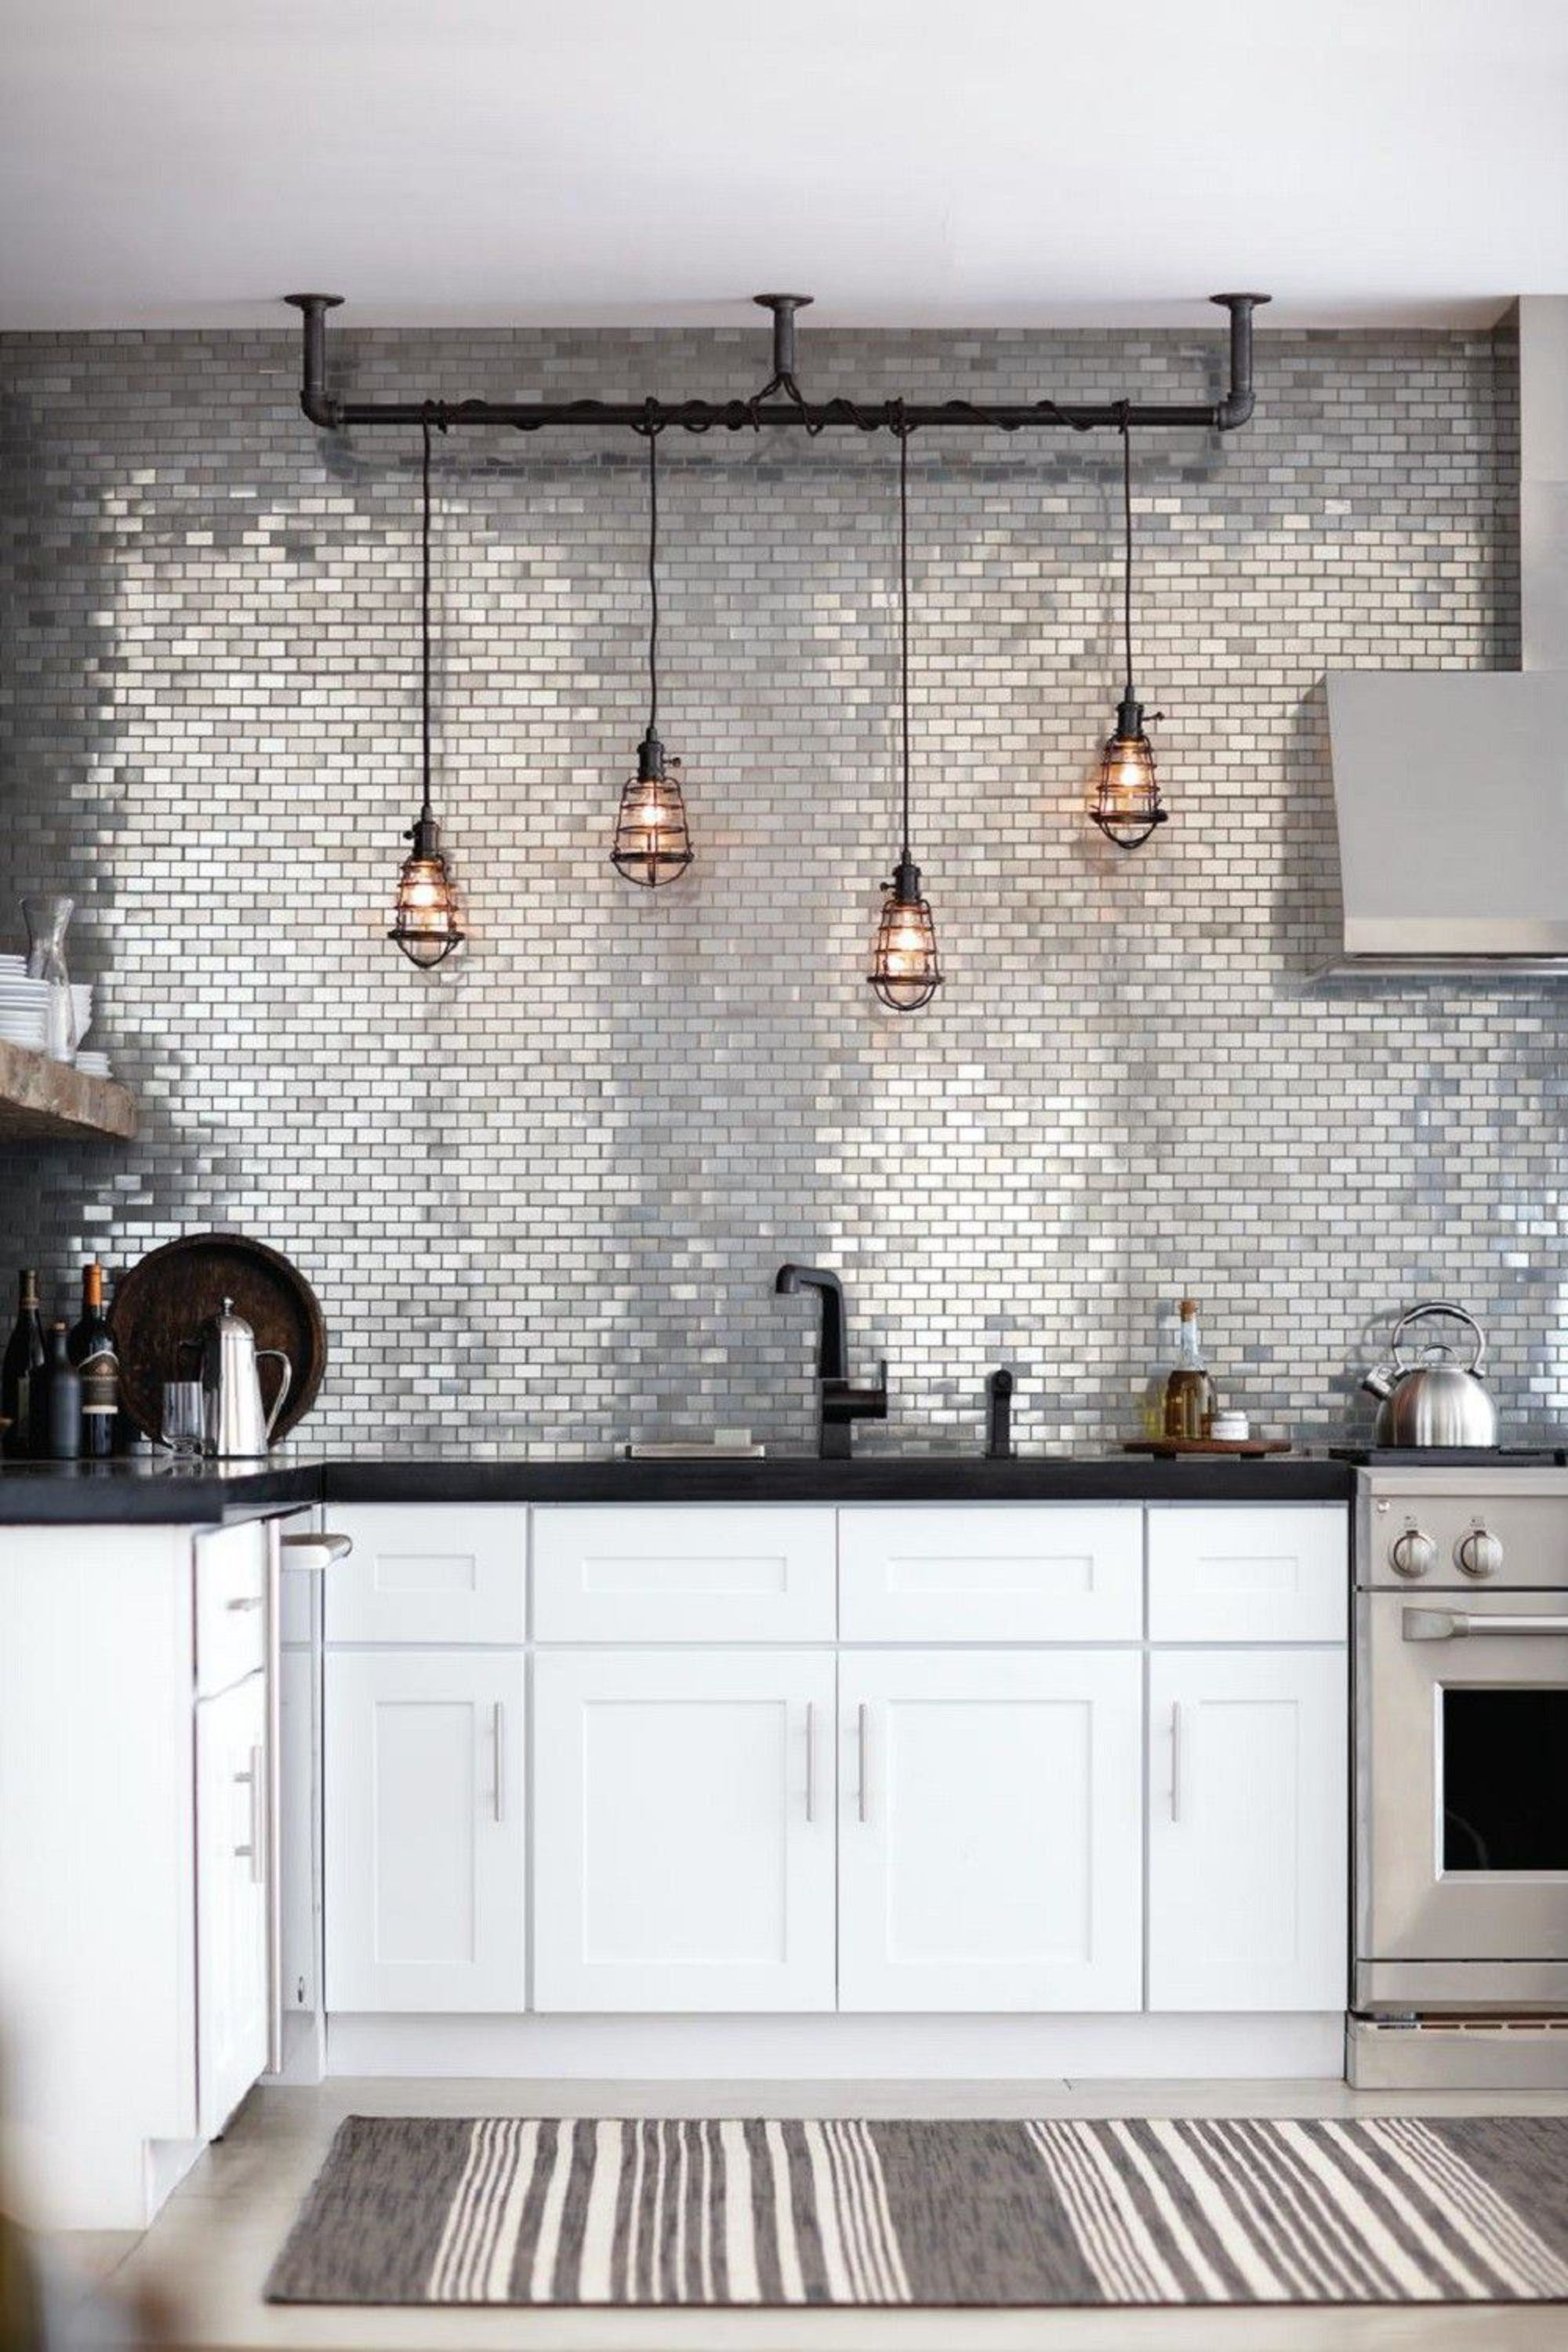 Metallic Tiles Will Add A Glamorous Backsplash In Your Kitchen